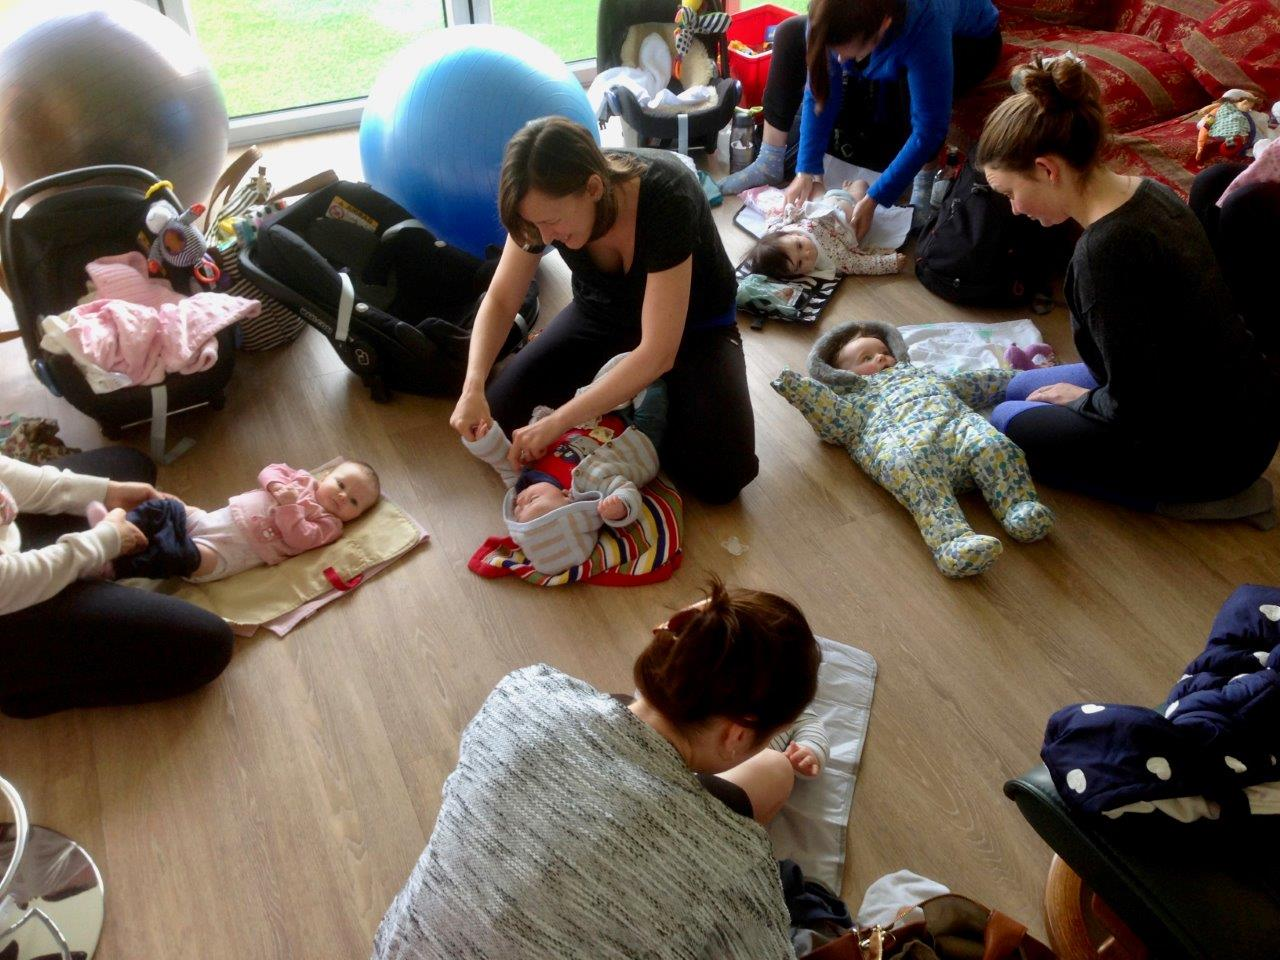 Mums preparing their babies for home after mum & baby yoga class